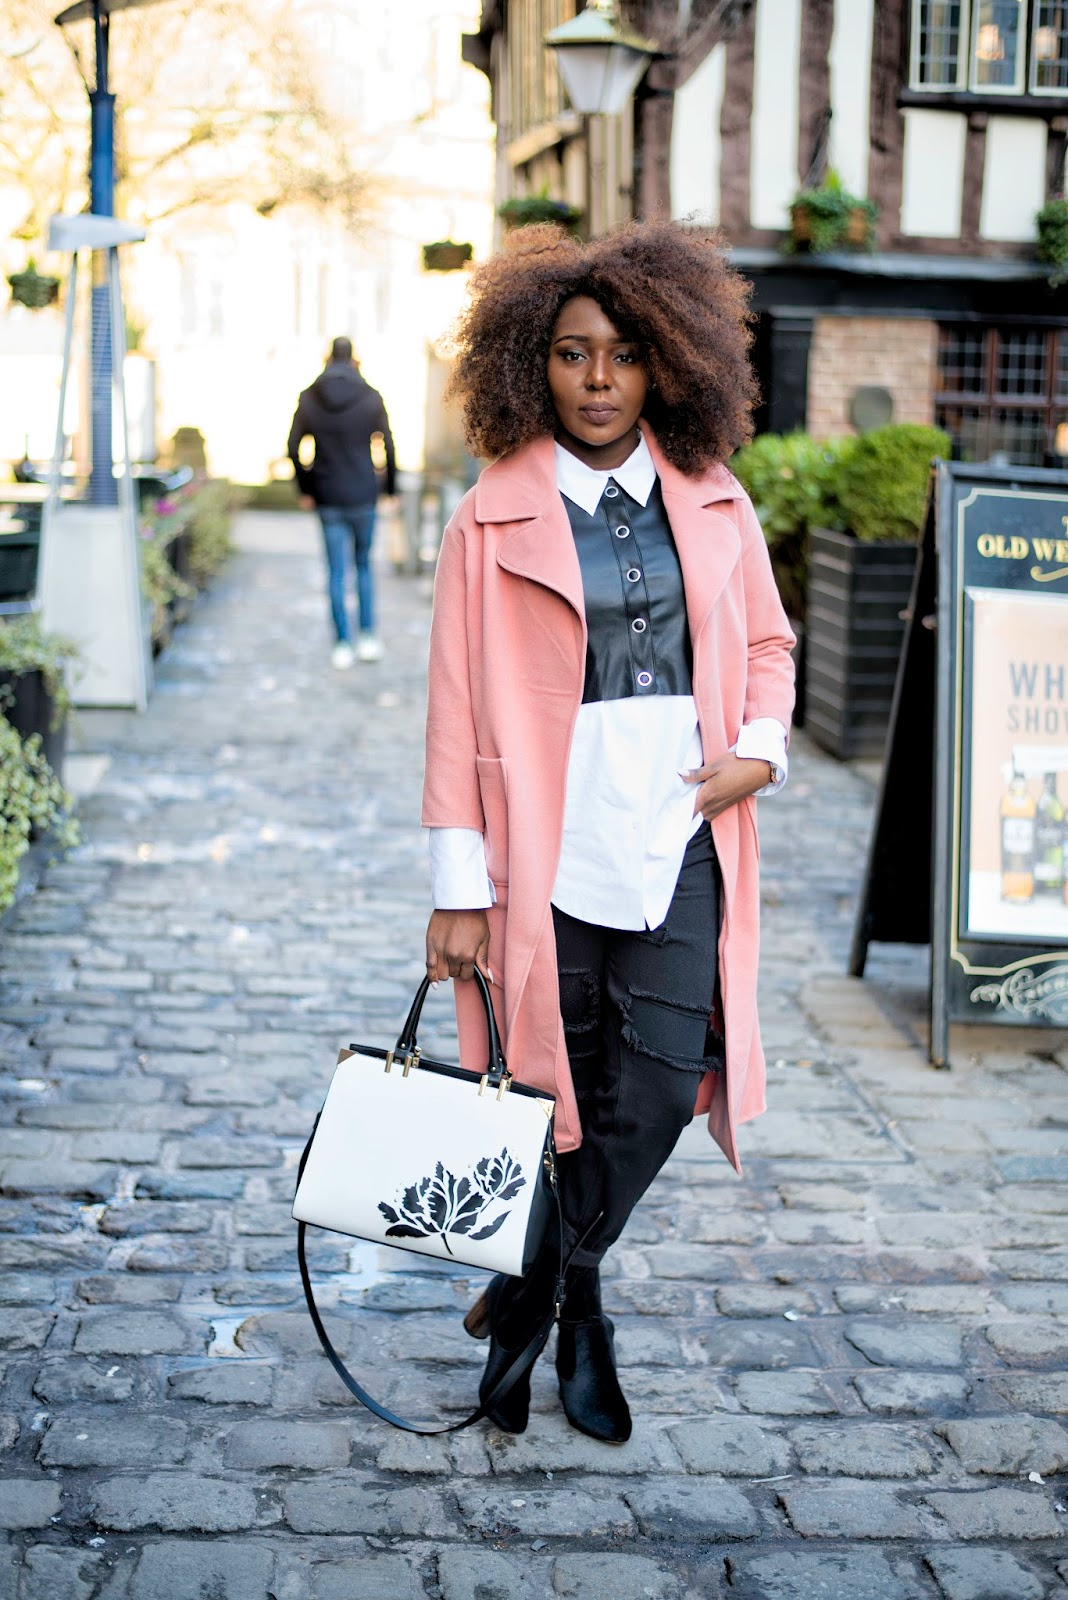 Stephylately | Wearing Boohoo Emeli Collar Coat, boohoo ankle boots and boohoo mum jeans